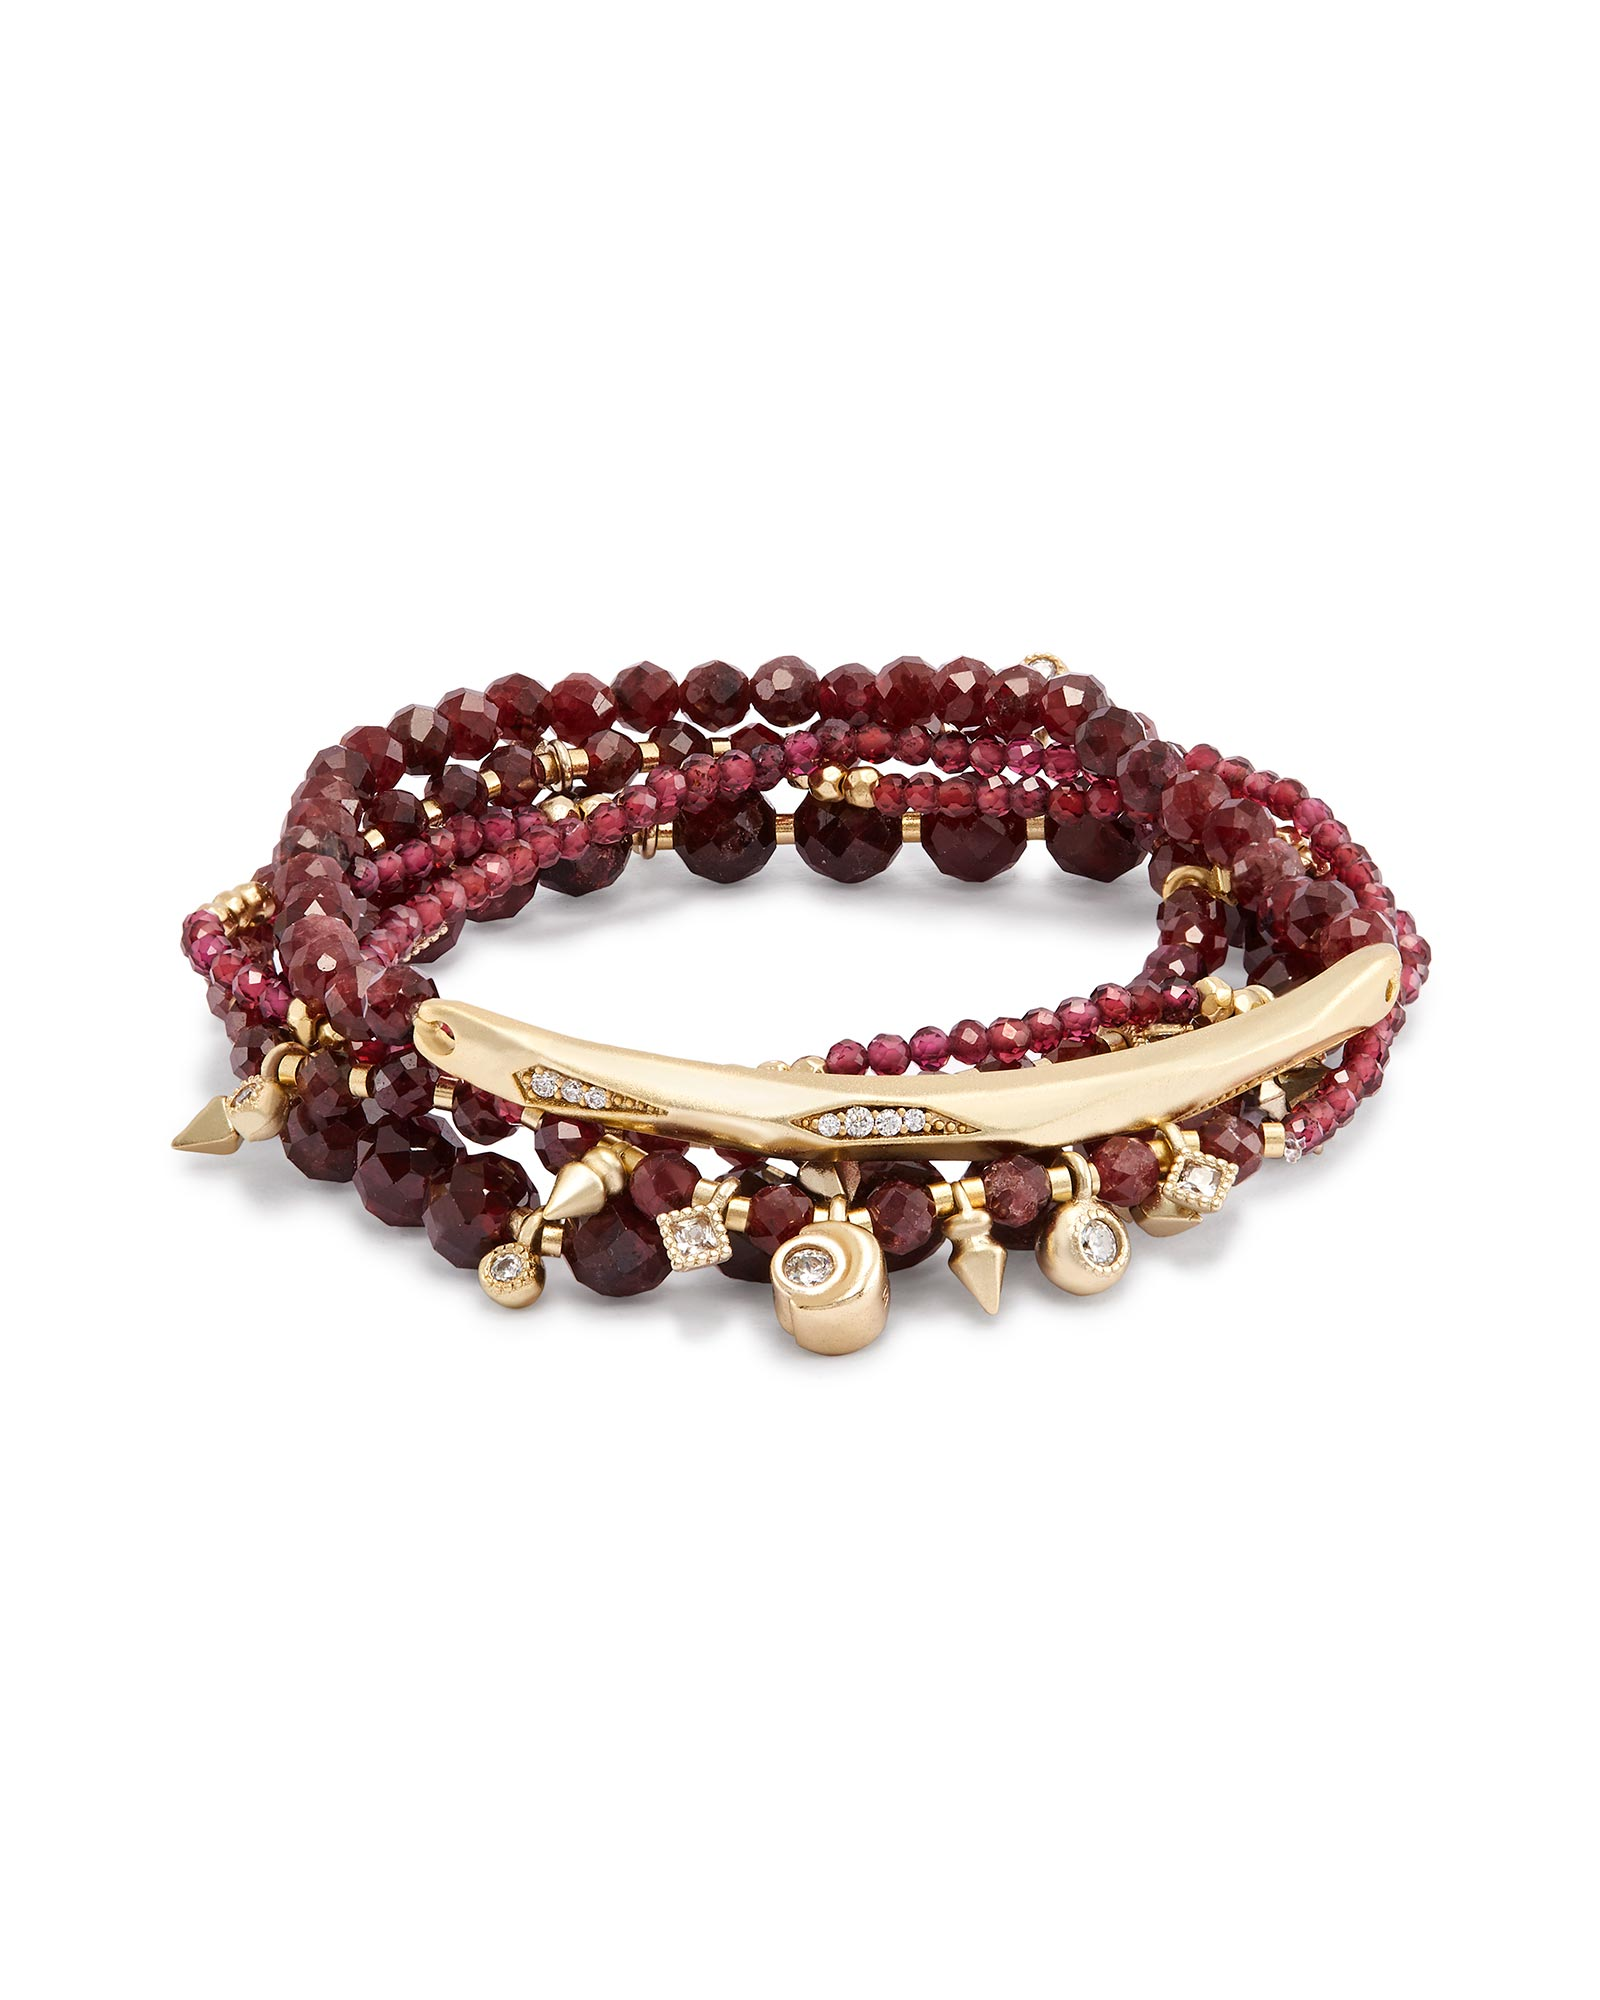 fullxfull eye fanciful relaxed red catching casual listing pearls dainty genuine deep cheerful citrine freshwater garnet bracelet il romantic